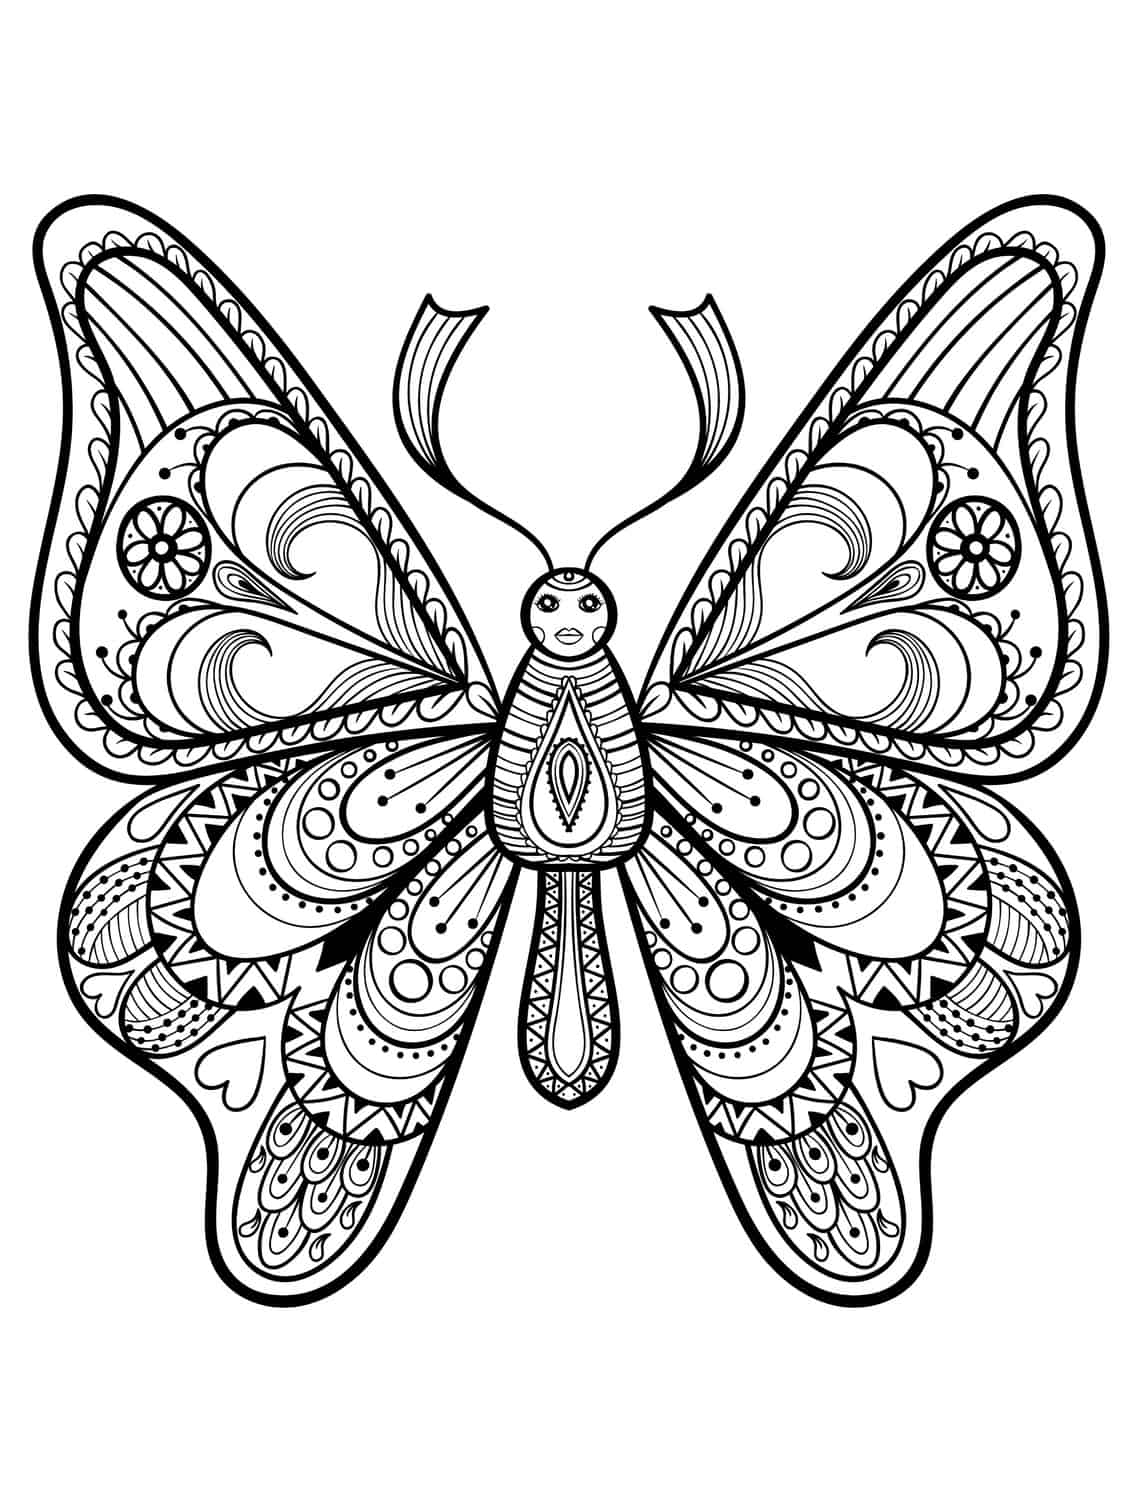 Ausmalbilder erwachsene ausmalbilder for Coloring pages of butterflies for adults